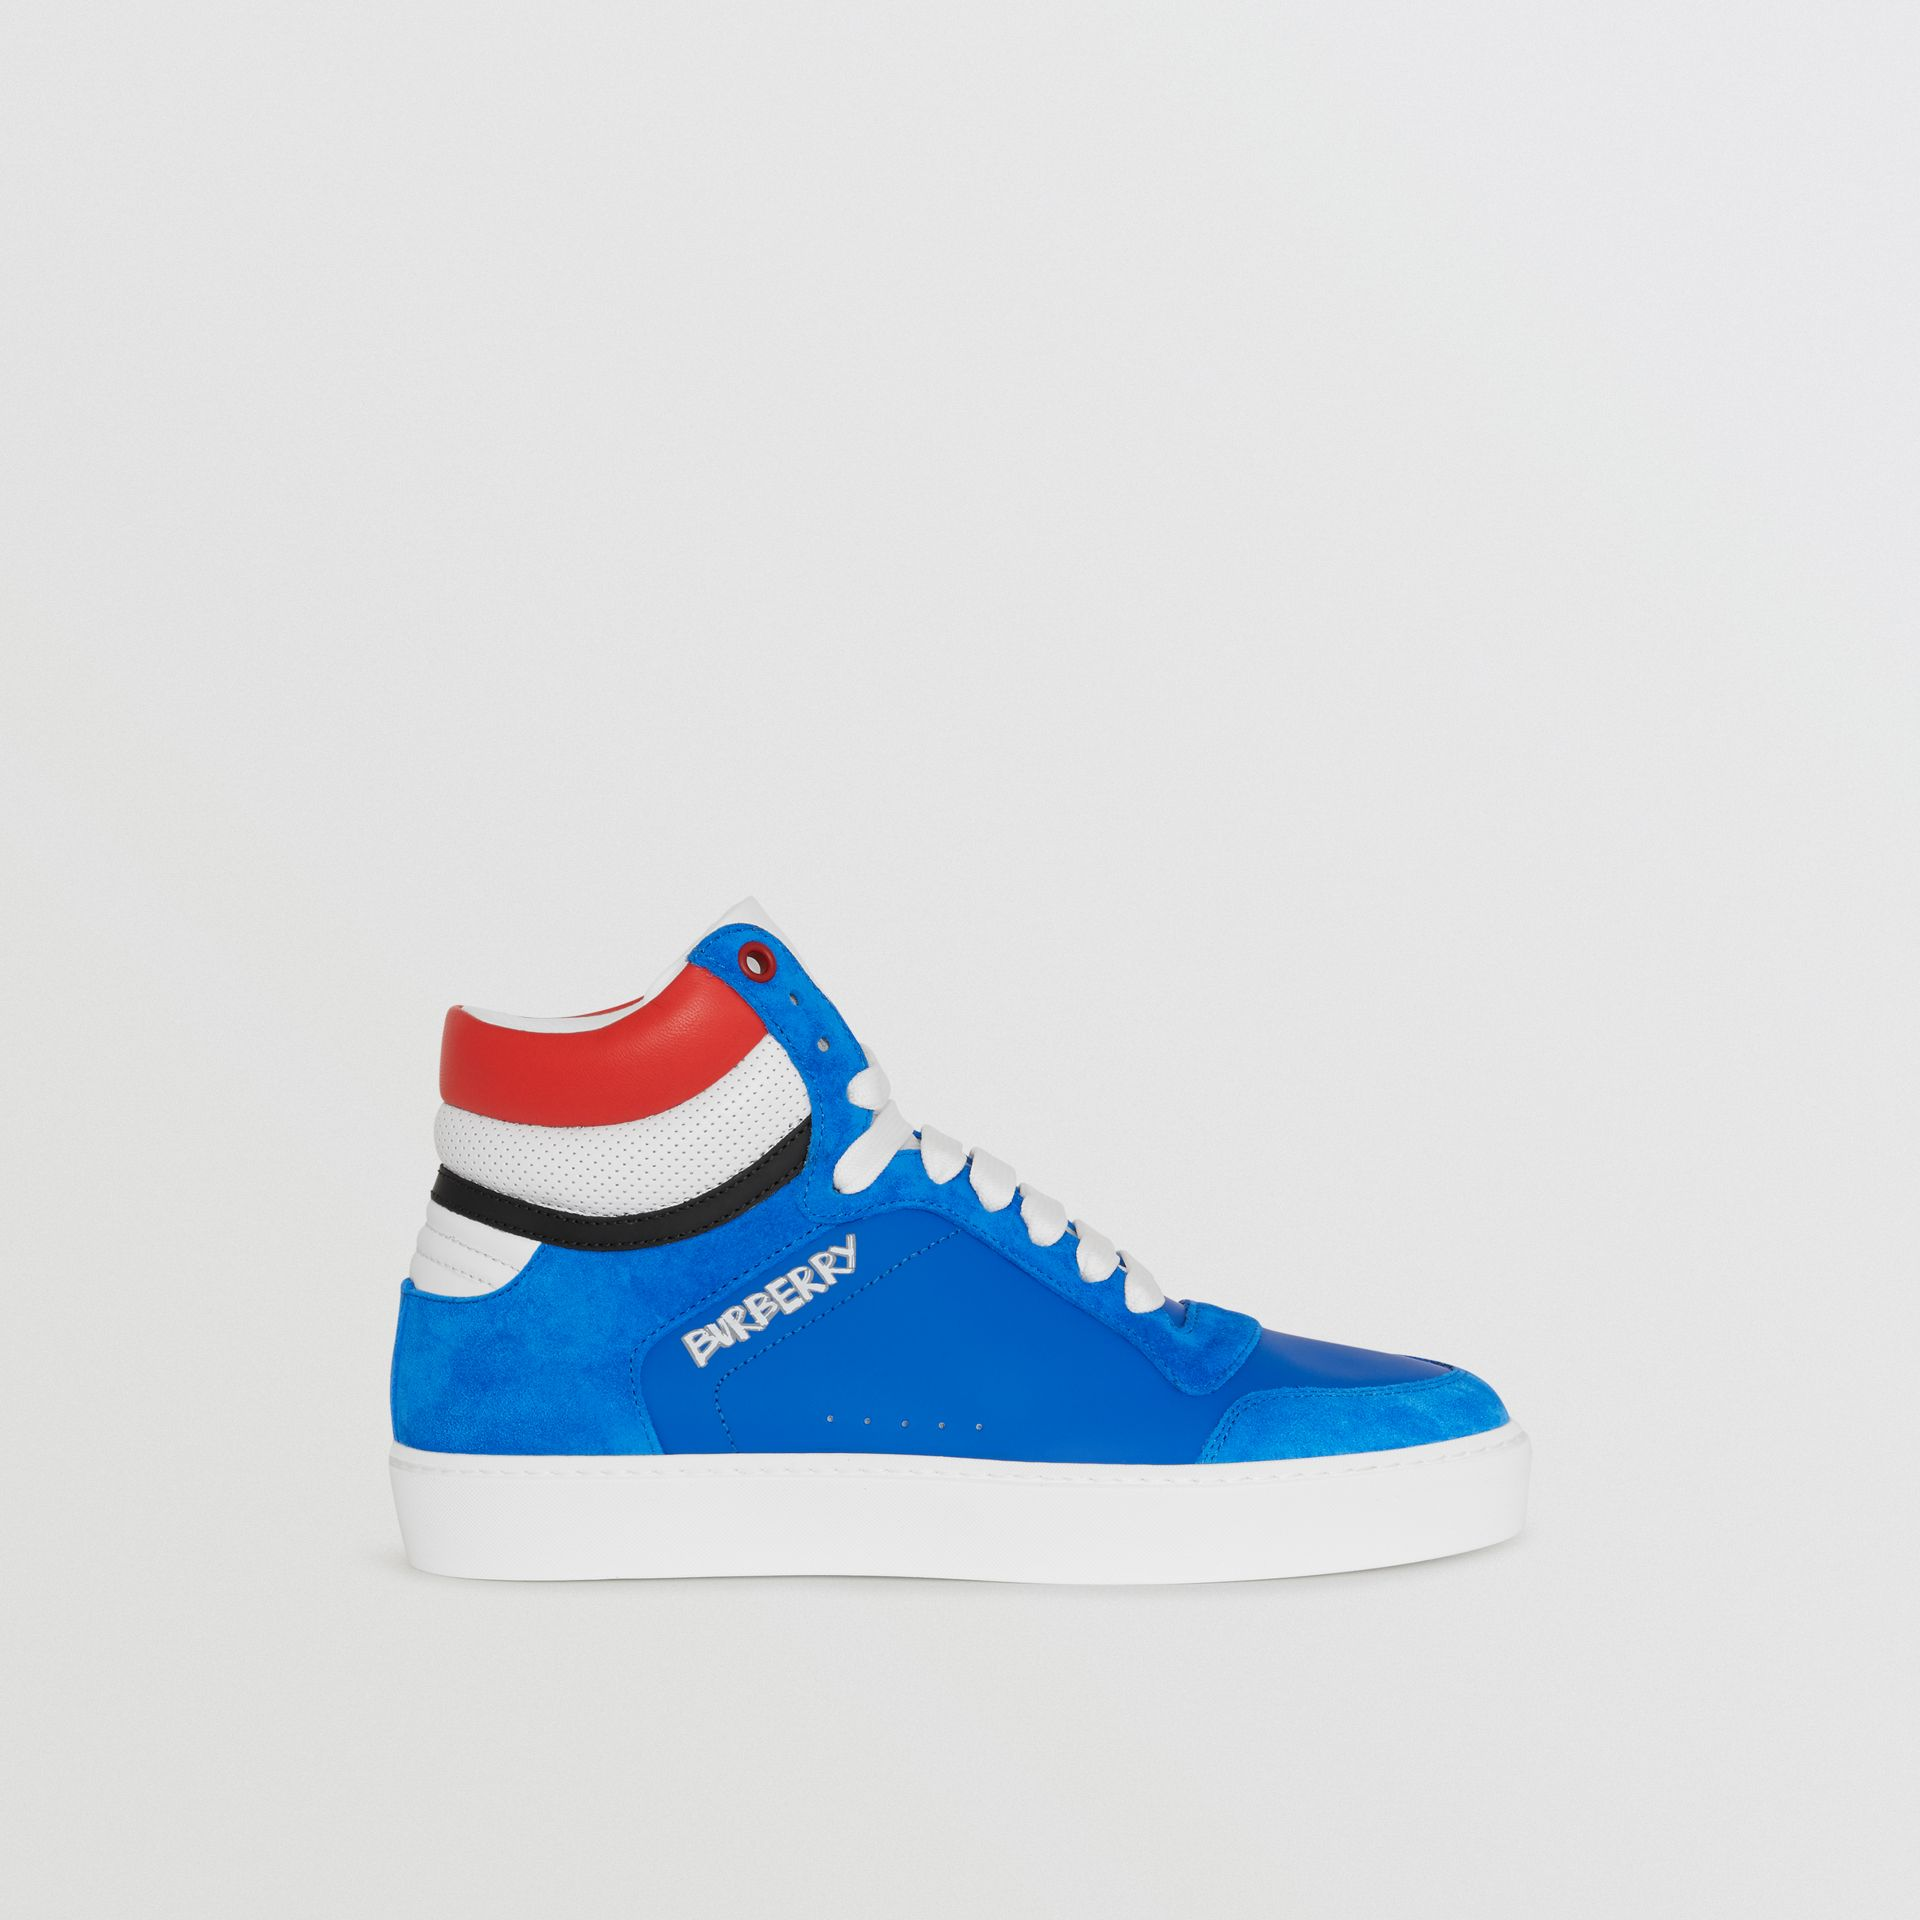 Leather and Suede High-top Sneakers in Bright Sky Blue - Women | Burberry Singapore - gallery image 5